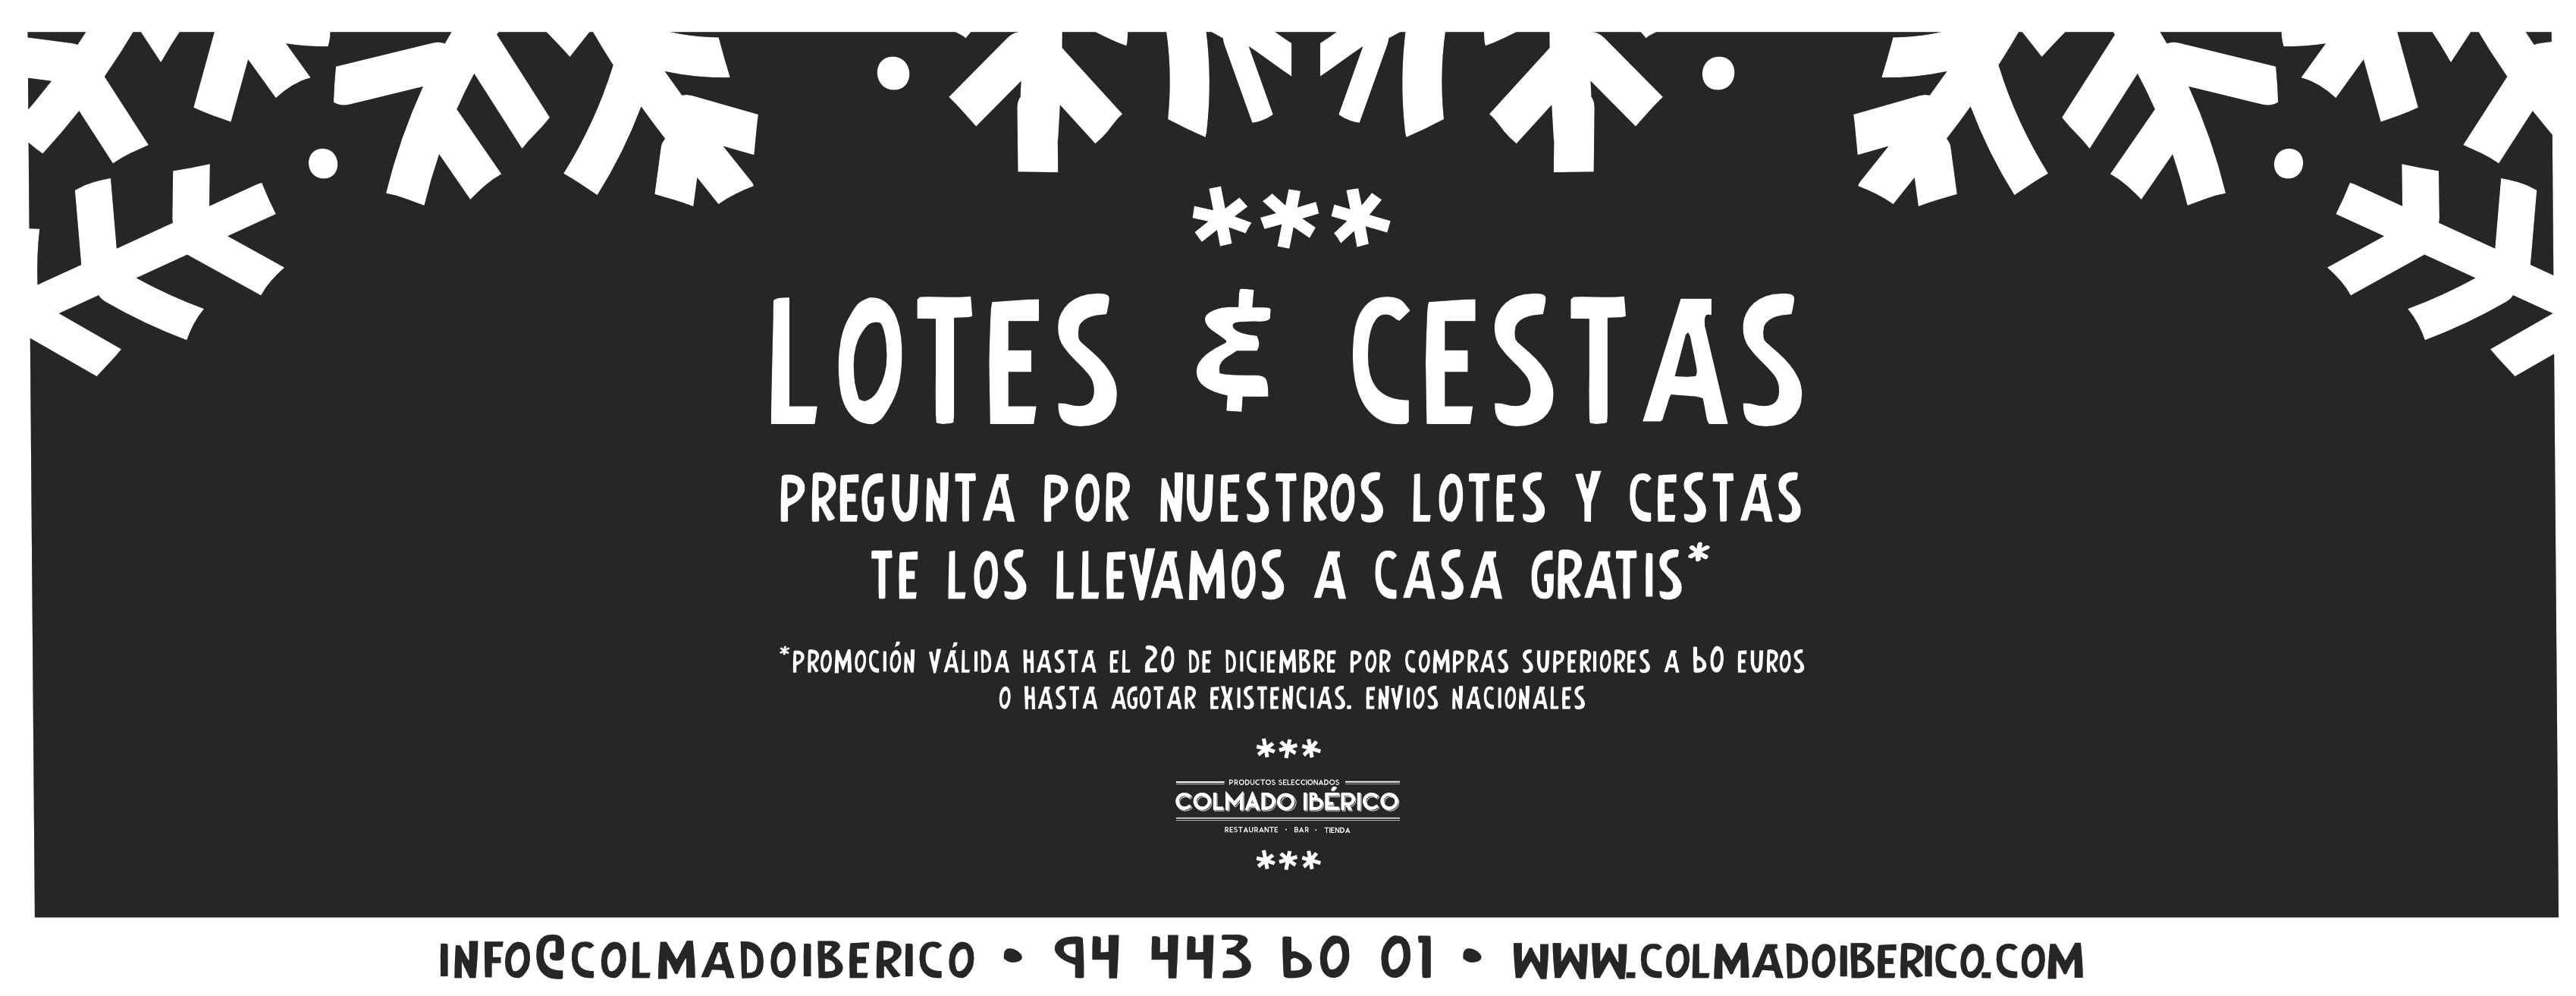 Colmado_Navidad_facebook_background_1_LotesyCestas